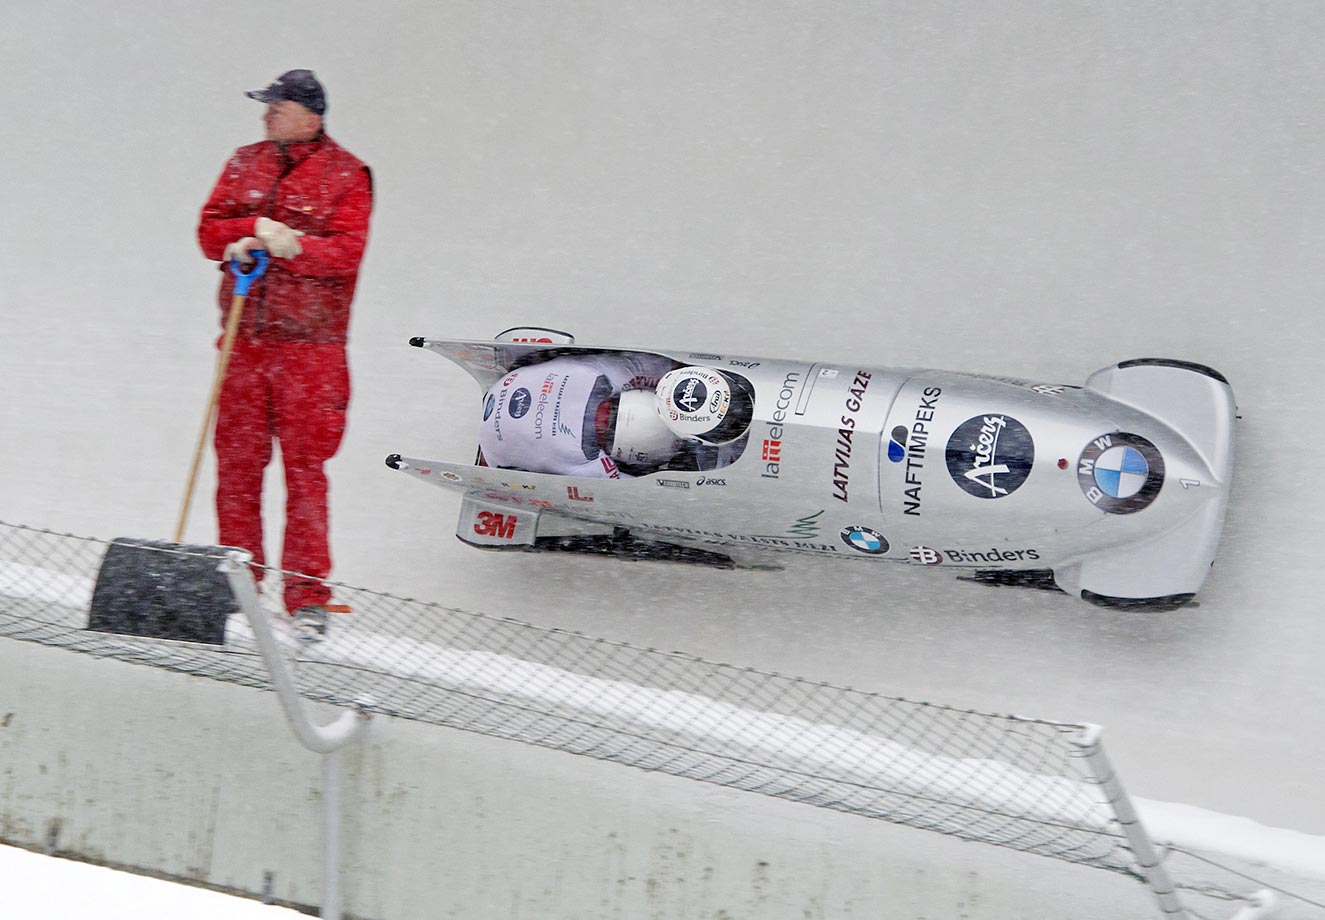 A view of the two-man bobsled competition at the Bob World Cup in Altenberg, eastern Germany.